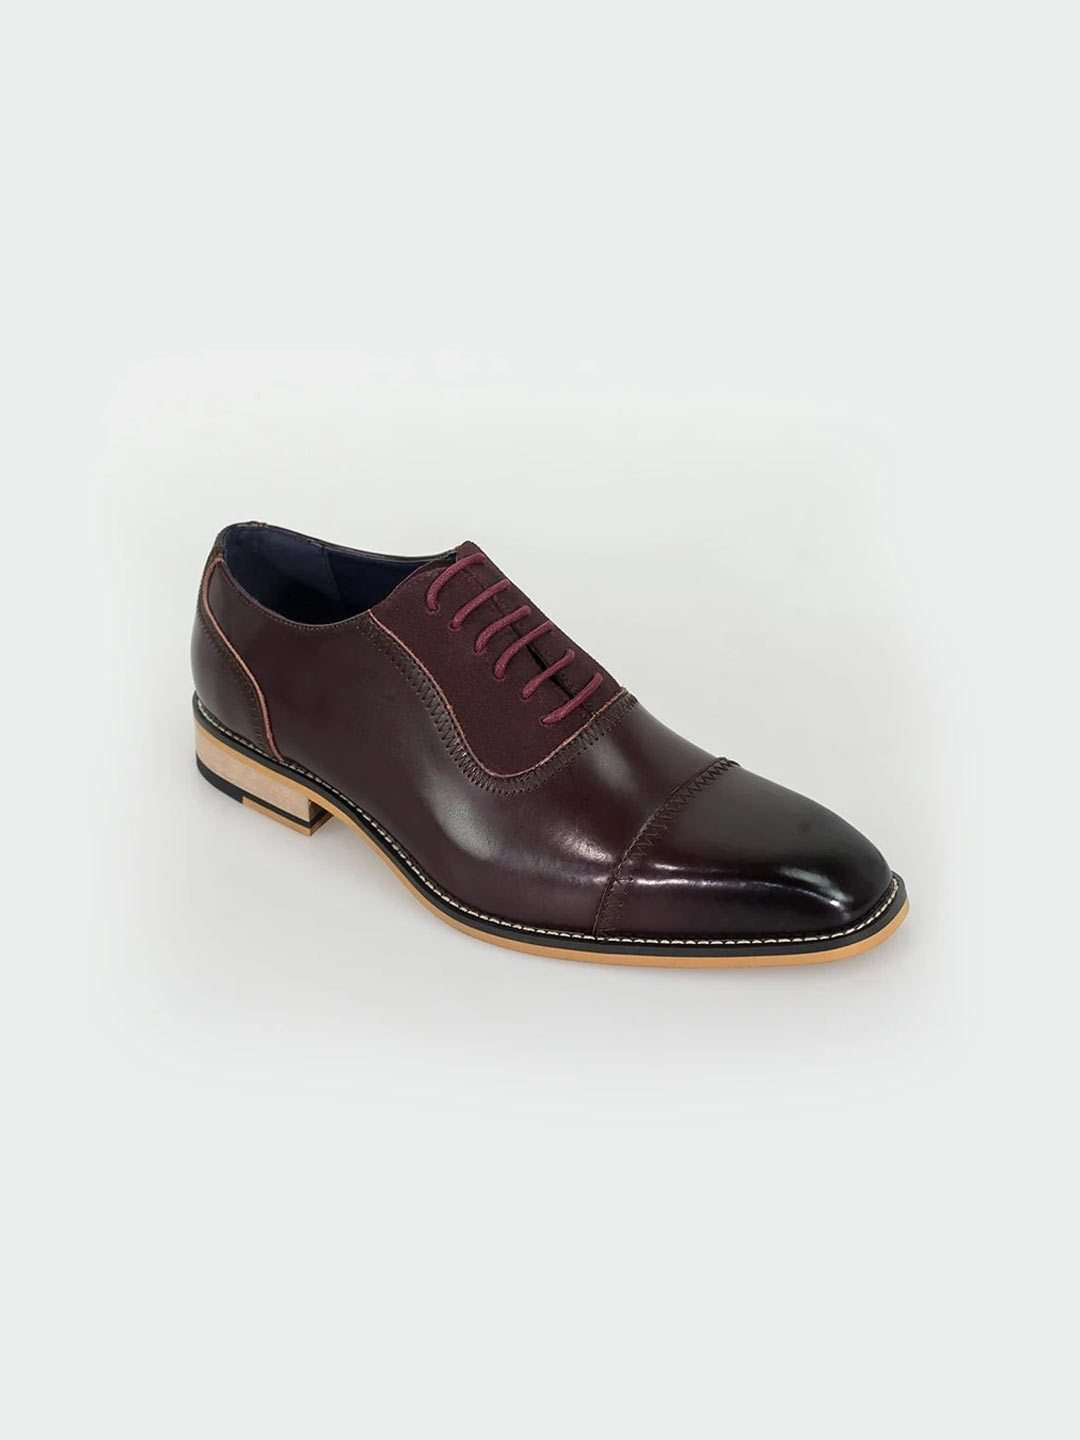 CAVANI Arkin Leather Brogue - Revolver Menswear Bawtry